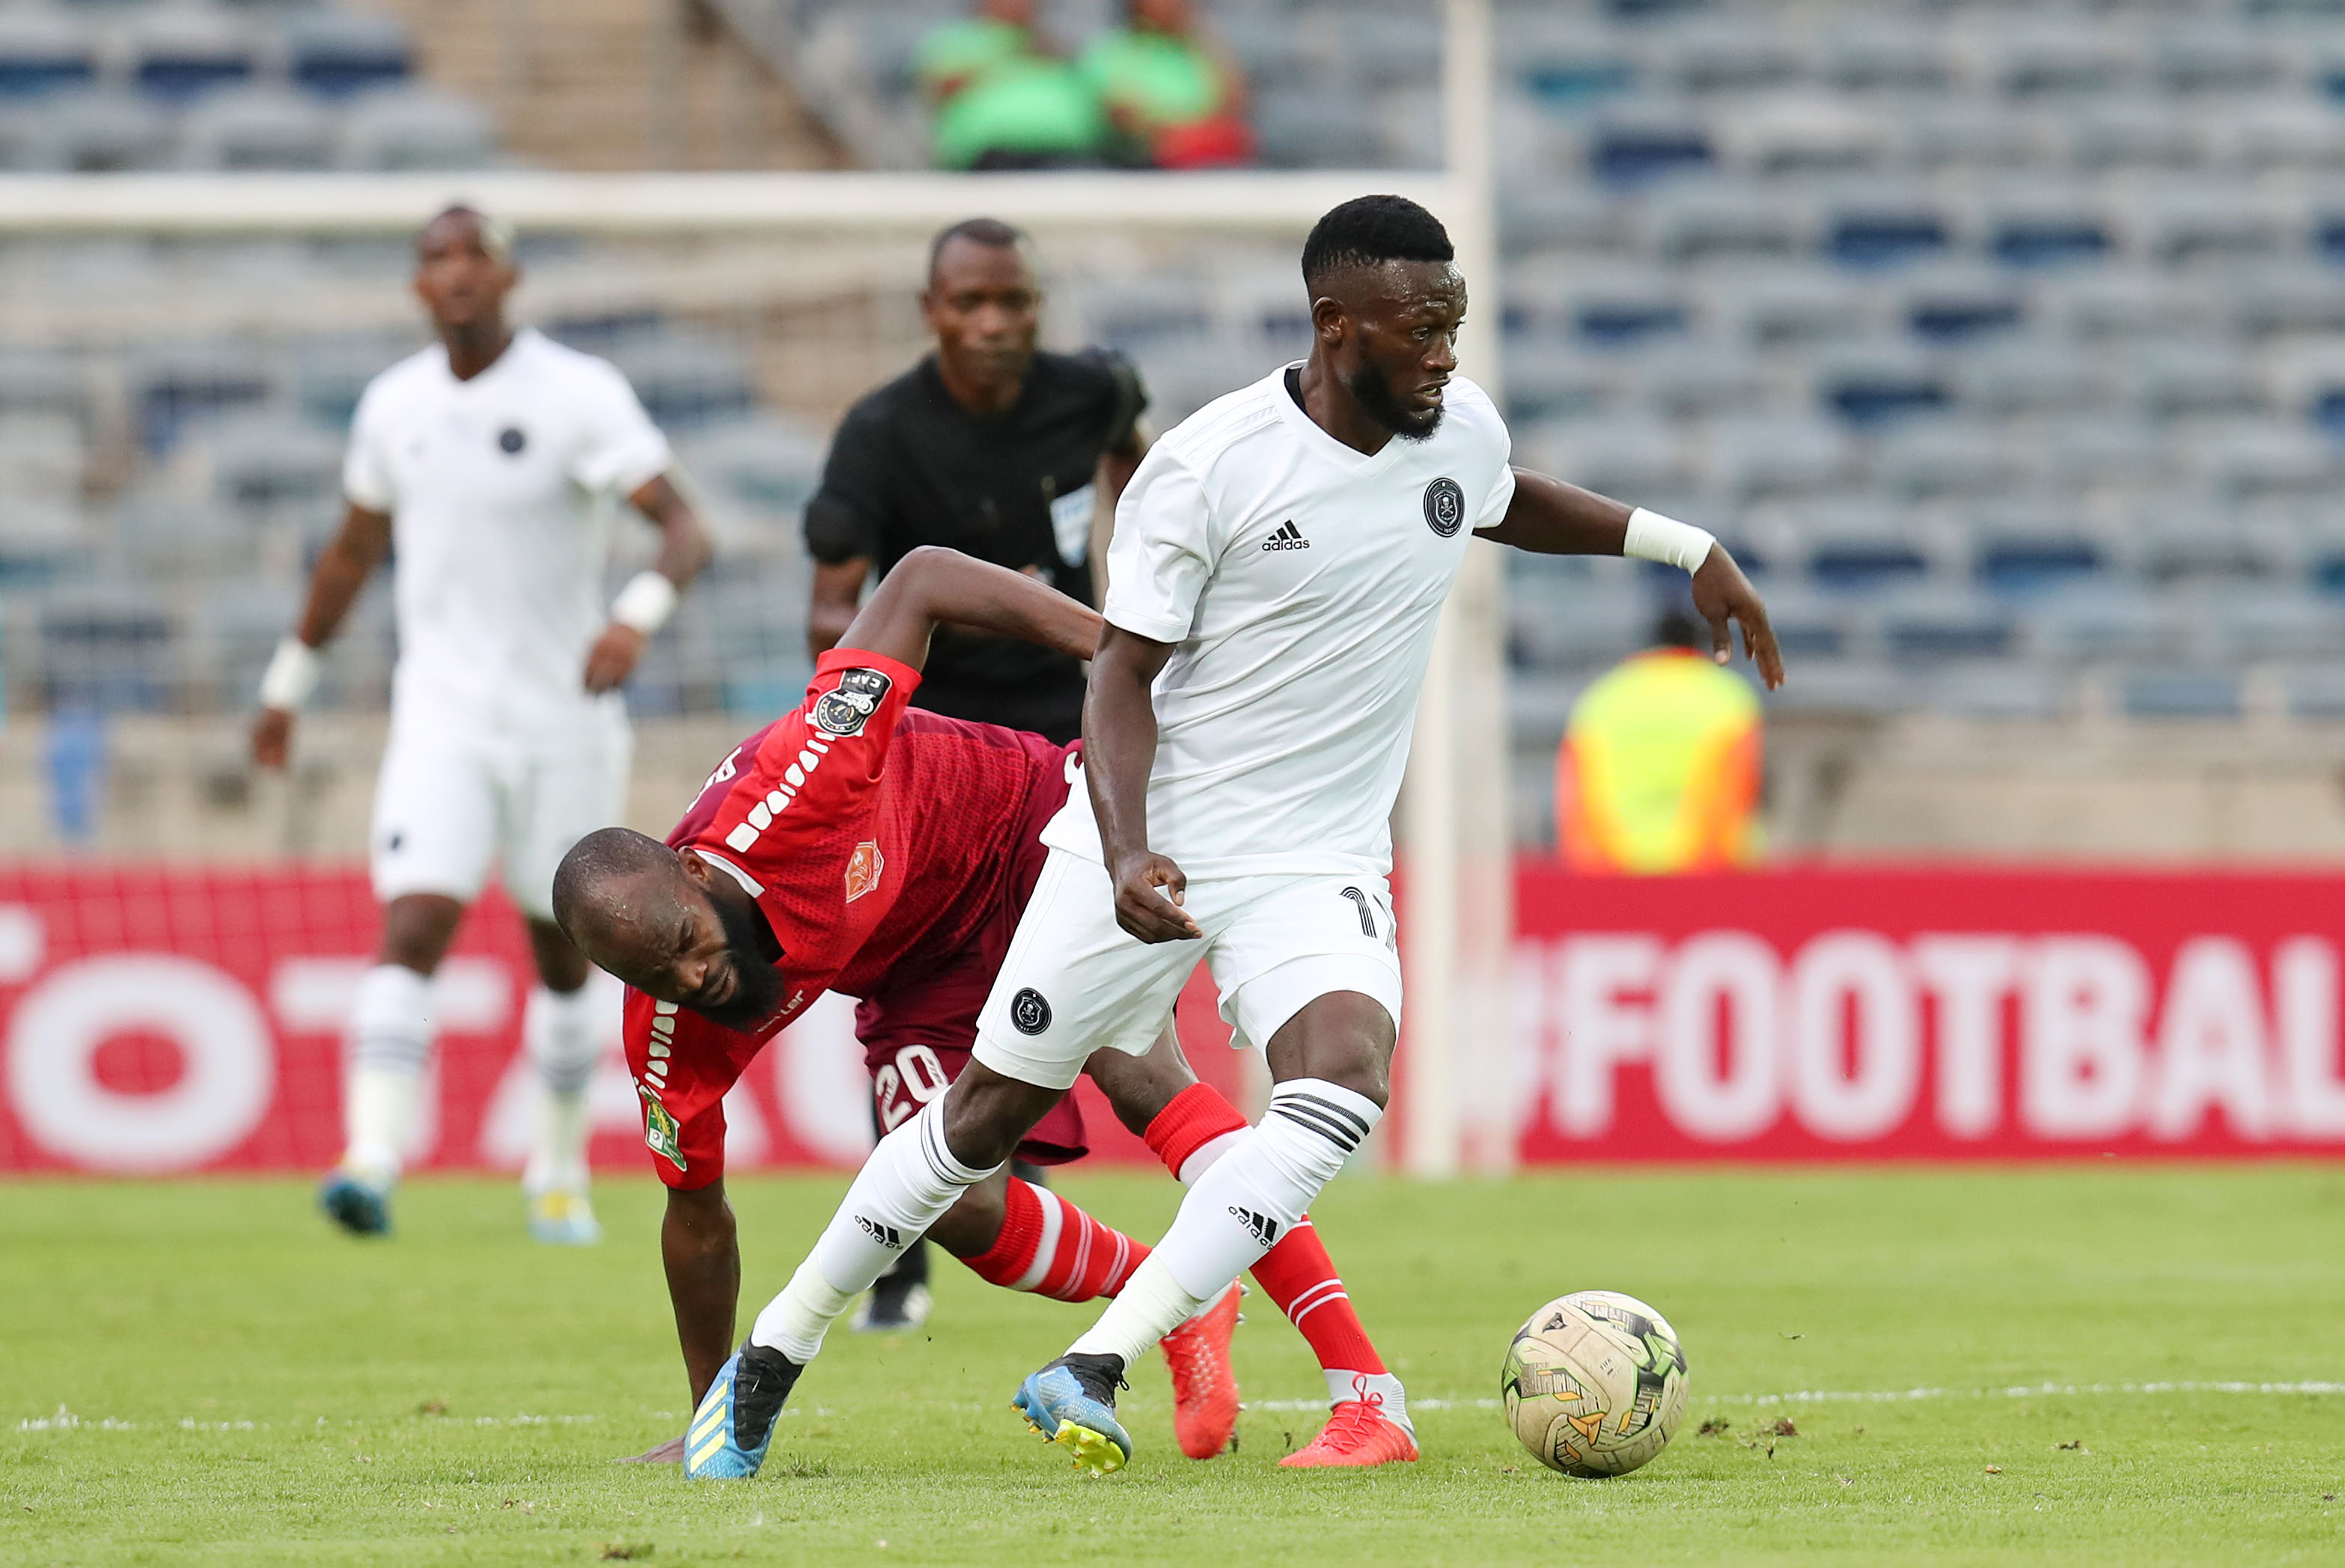 Bolaji Sakin of Horoya challenged by Augustine Mulenga of Orlando Pirates during the 2019 TOTAL CAF Champions League match at the Orlando Stadium, Soweto on the 18 January 2019.